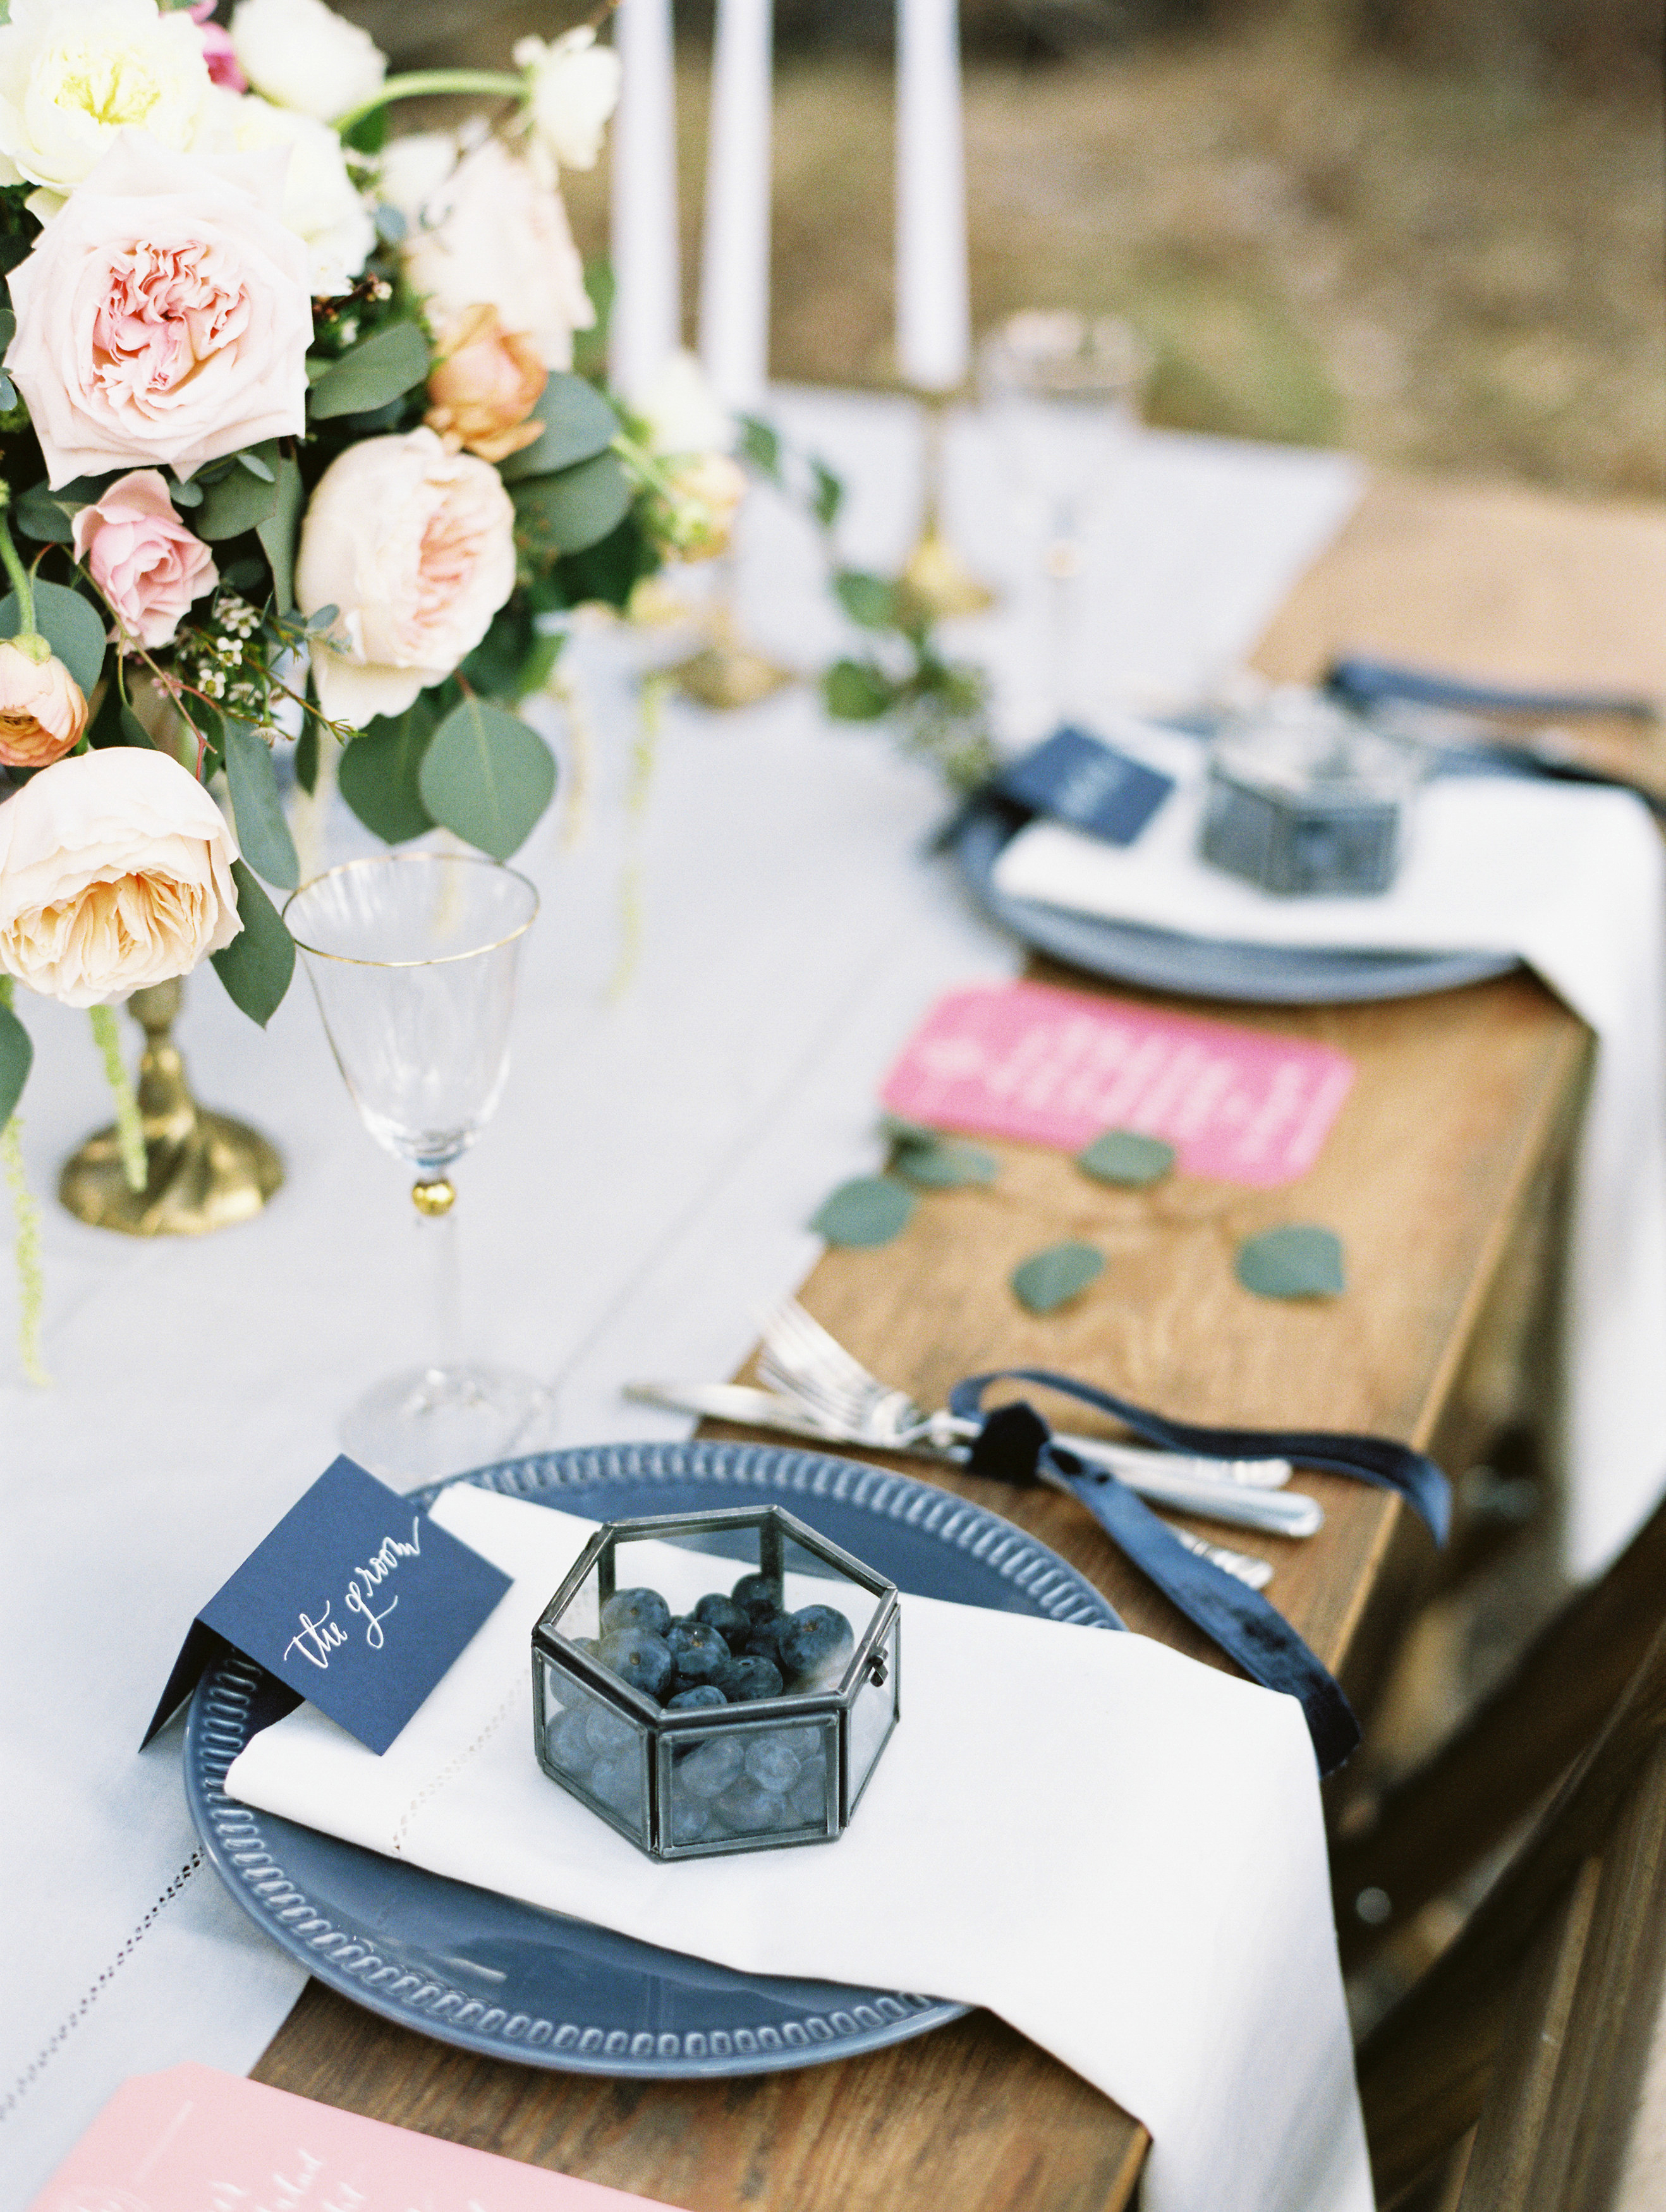 berry wedding ideas christie graham groom place setting